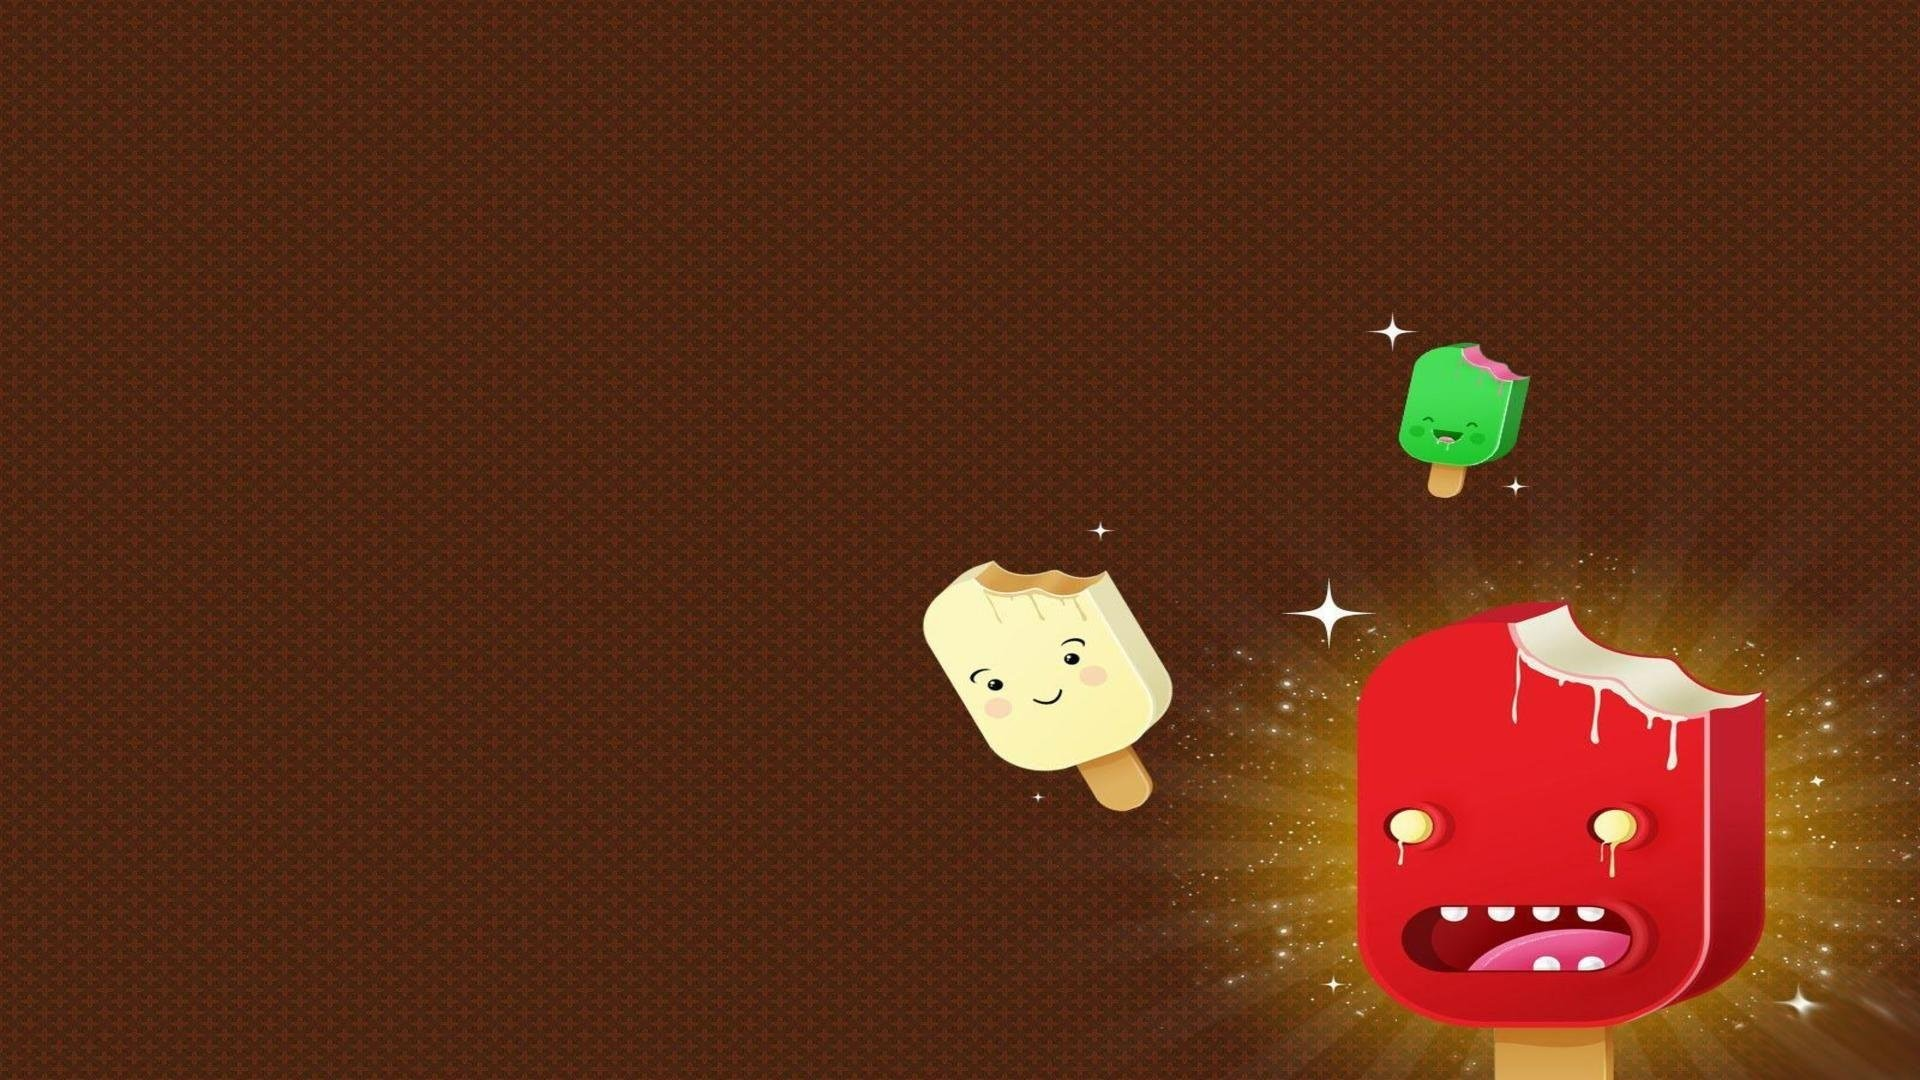 Res: 1920x1080, Cute Backgrounds for Phone. Click on the image to view full size and  download.